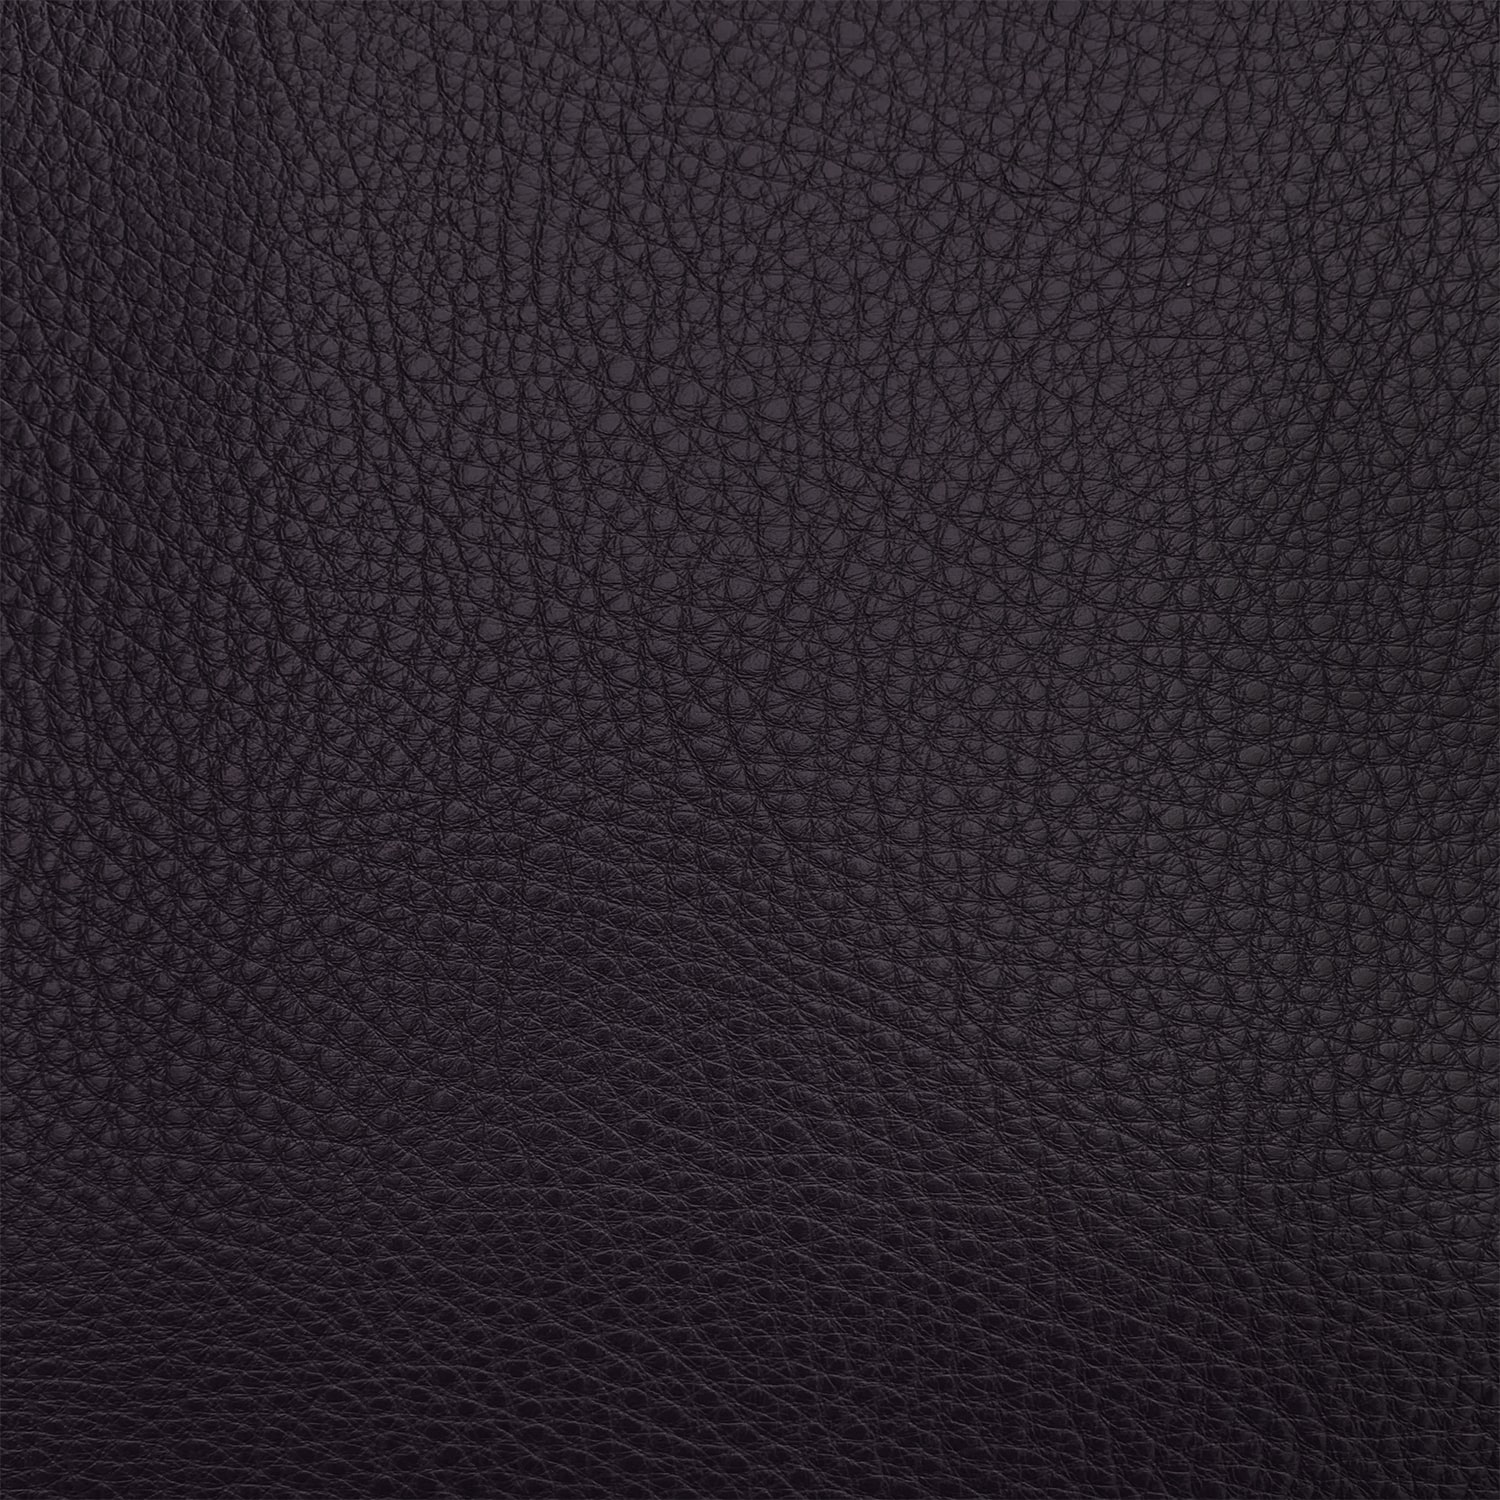 Bison: Black (grade F): #BIS0001<br>Thick, soft, even coloration; medium protection